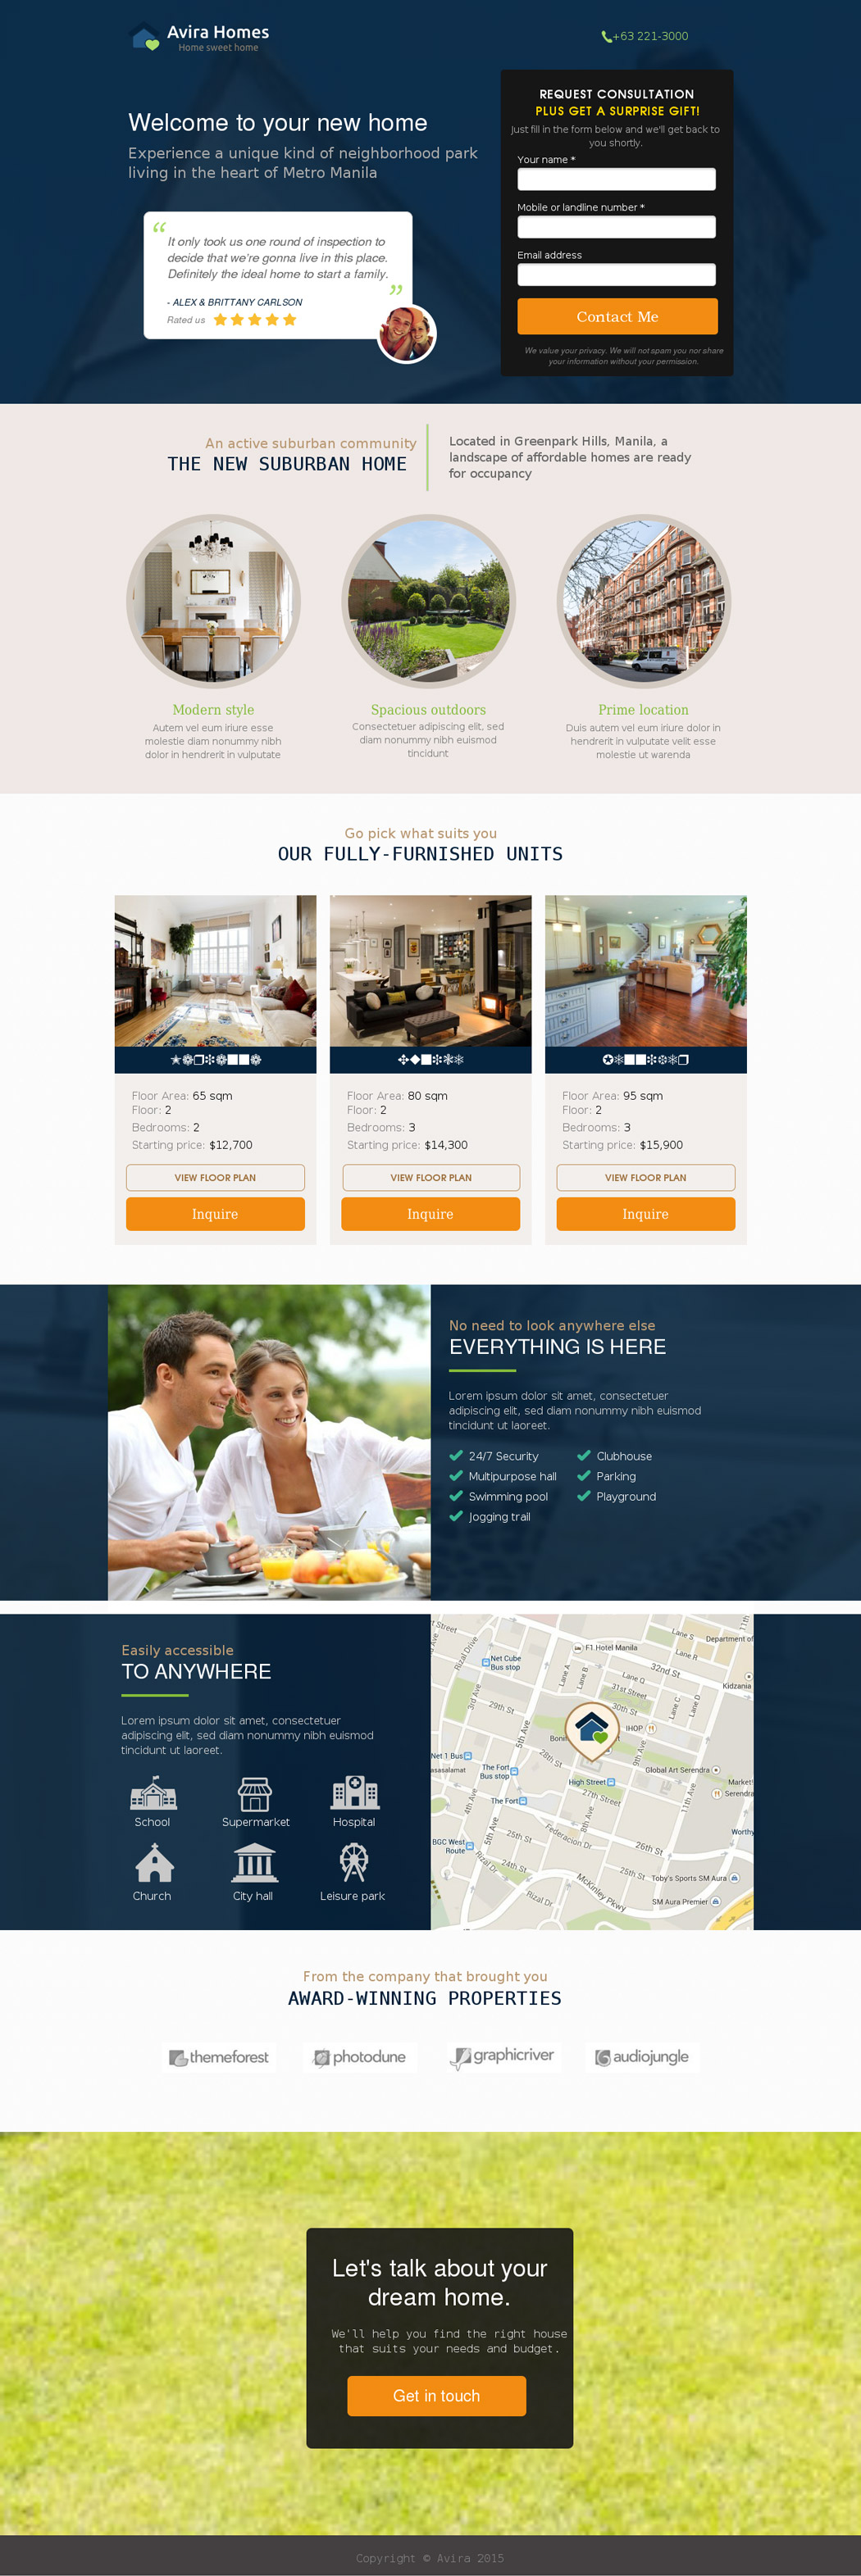 5 Real Estate Landing Page Templates for Your Appraisal